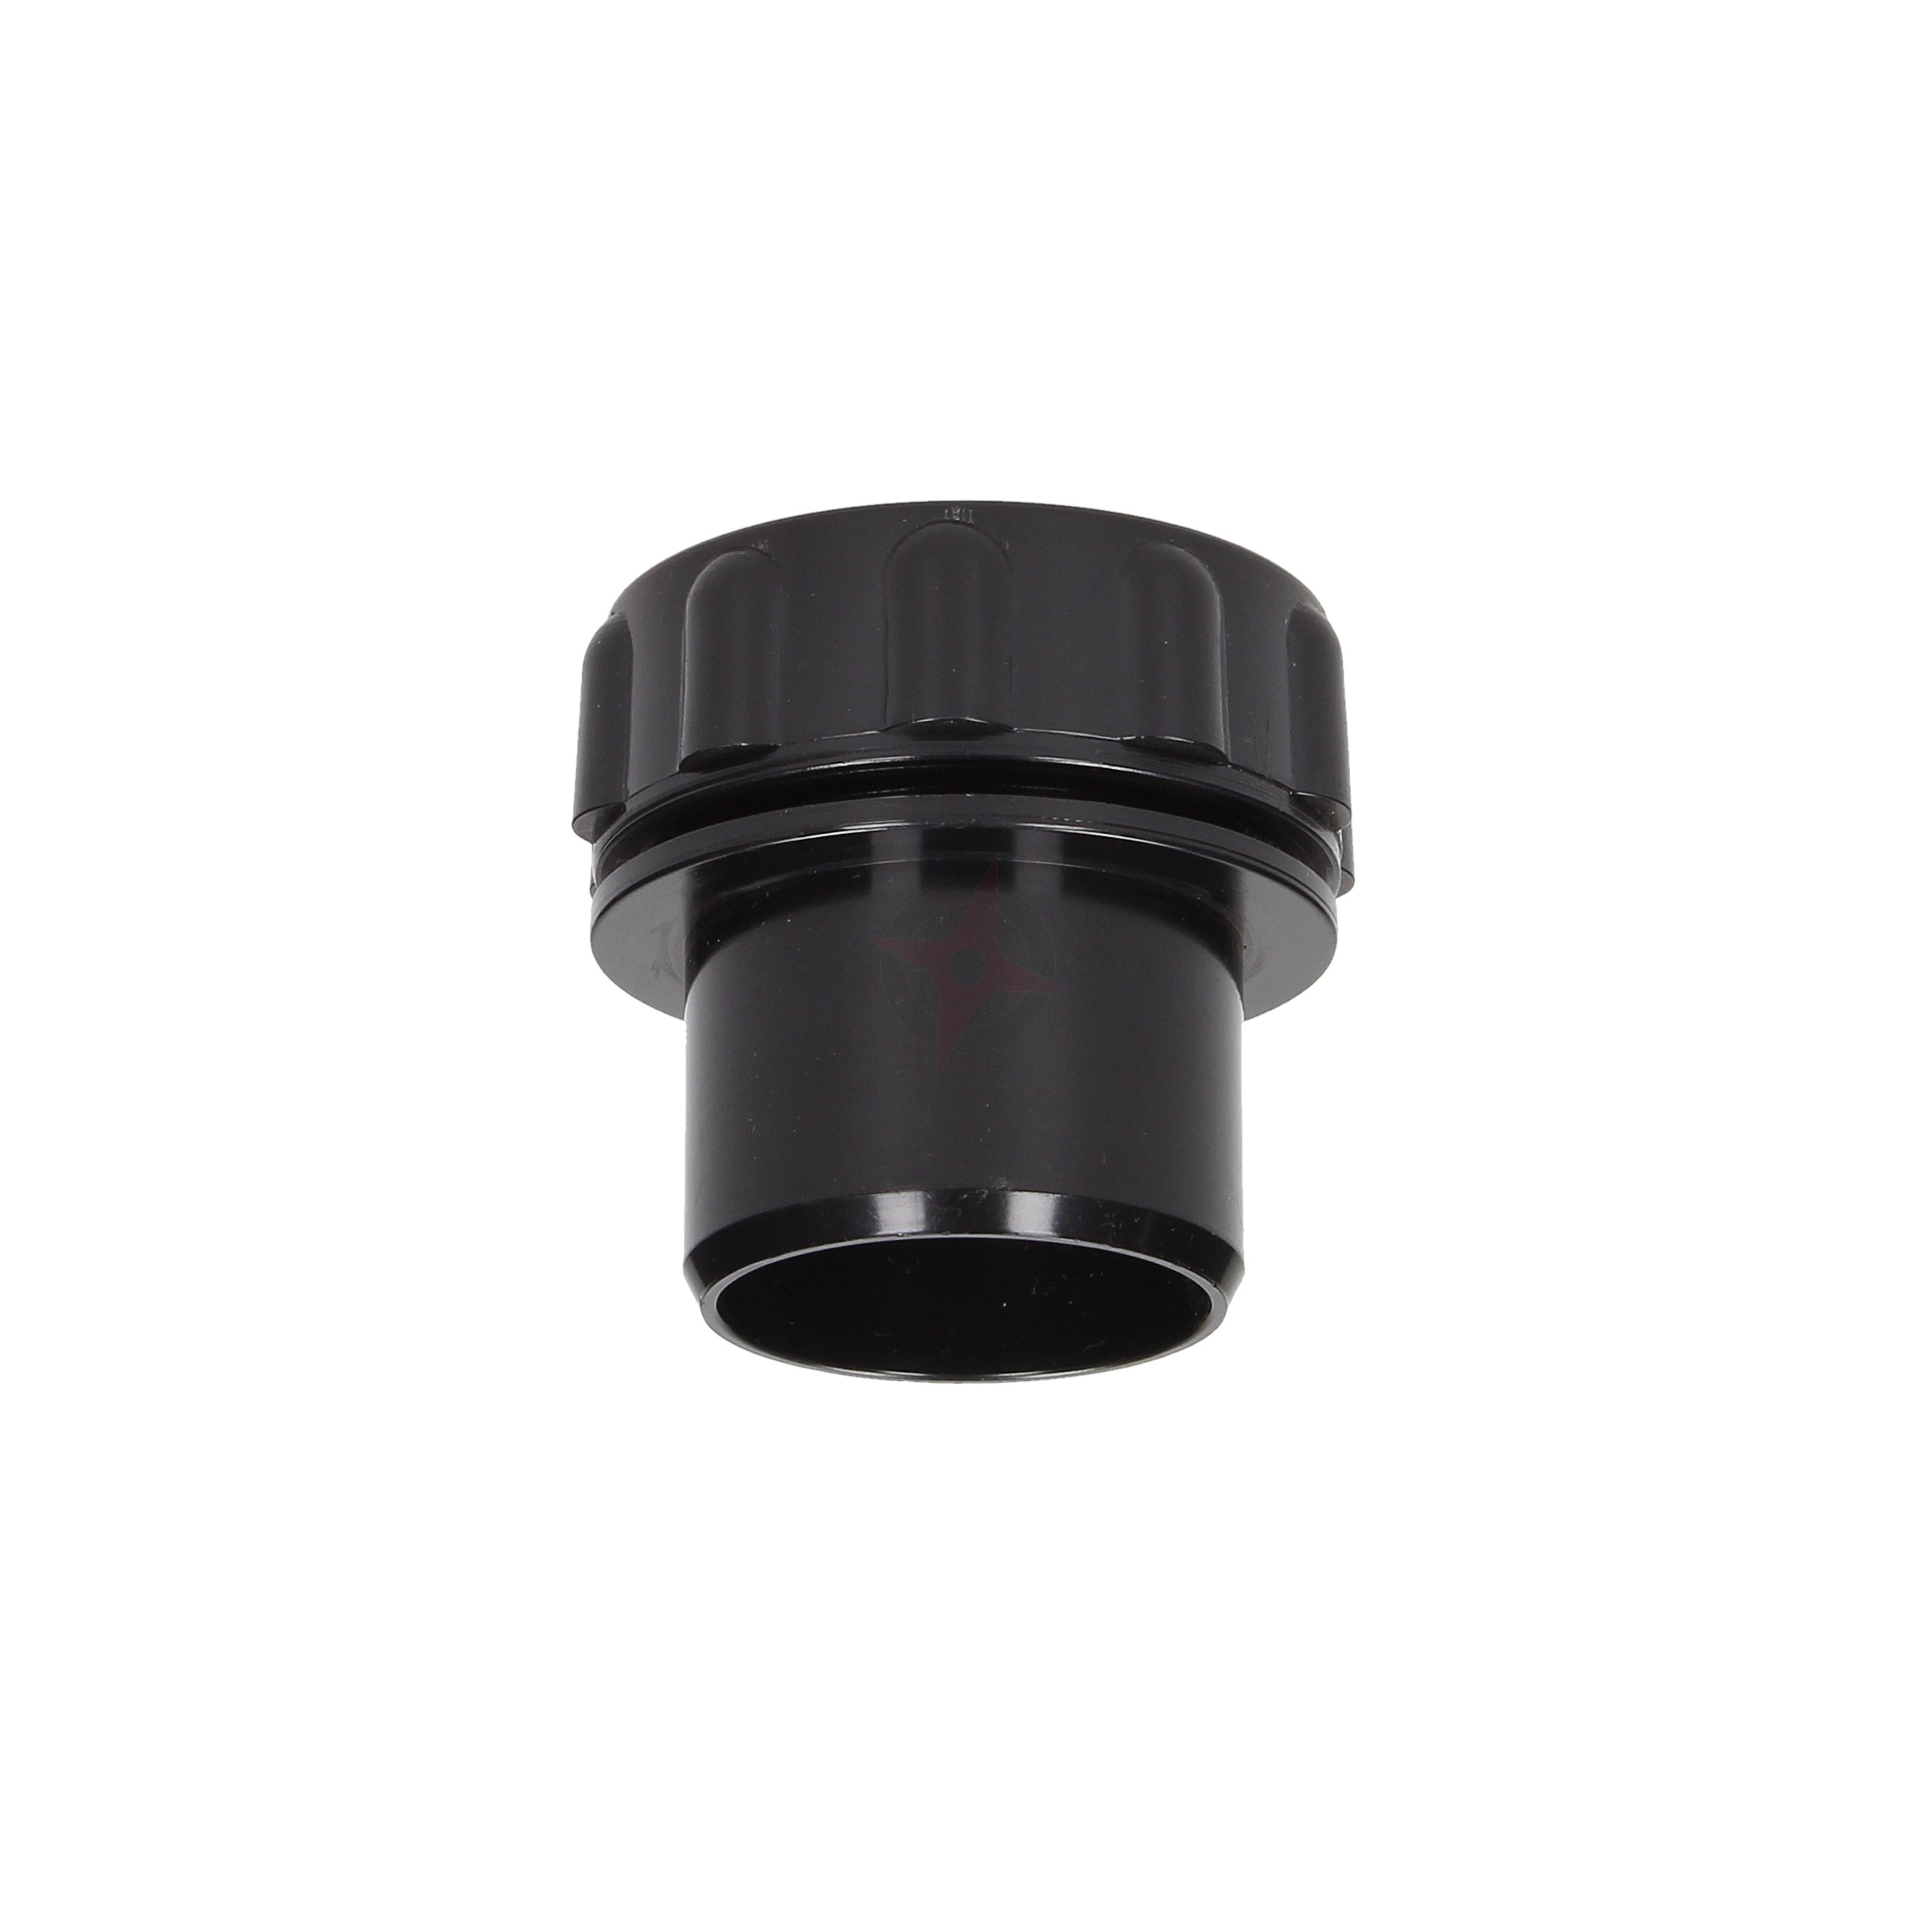 Black 36mm Solvent Waste Access Cap